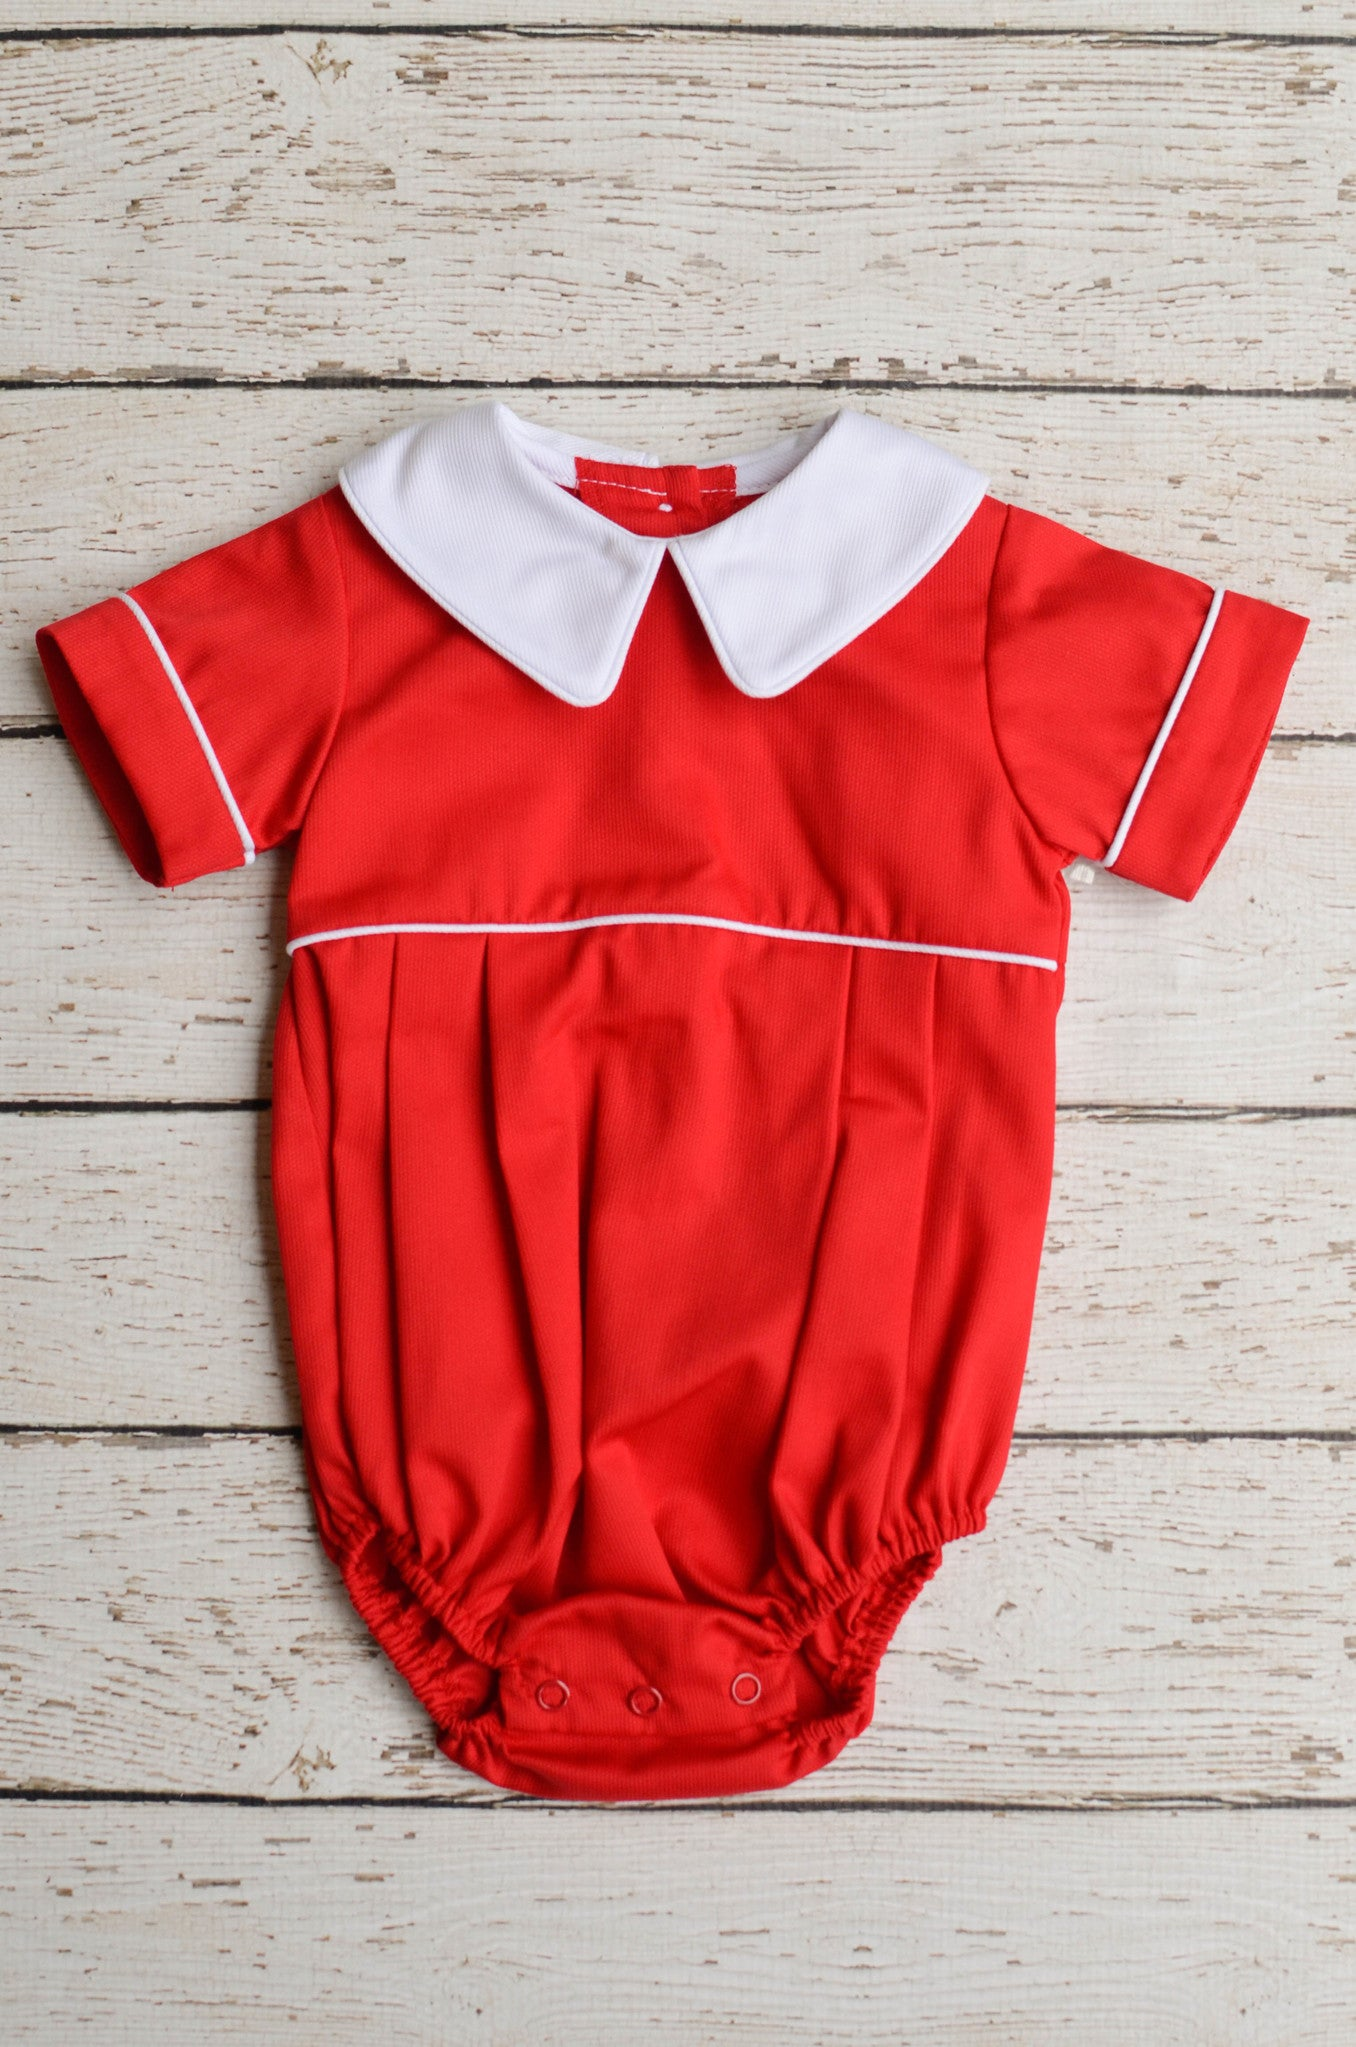 Basic Boy Peter Pan Pointed collar in Red